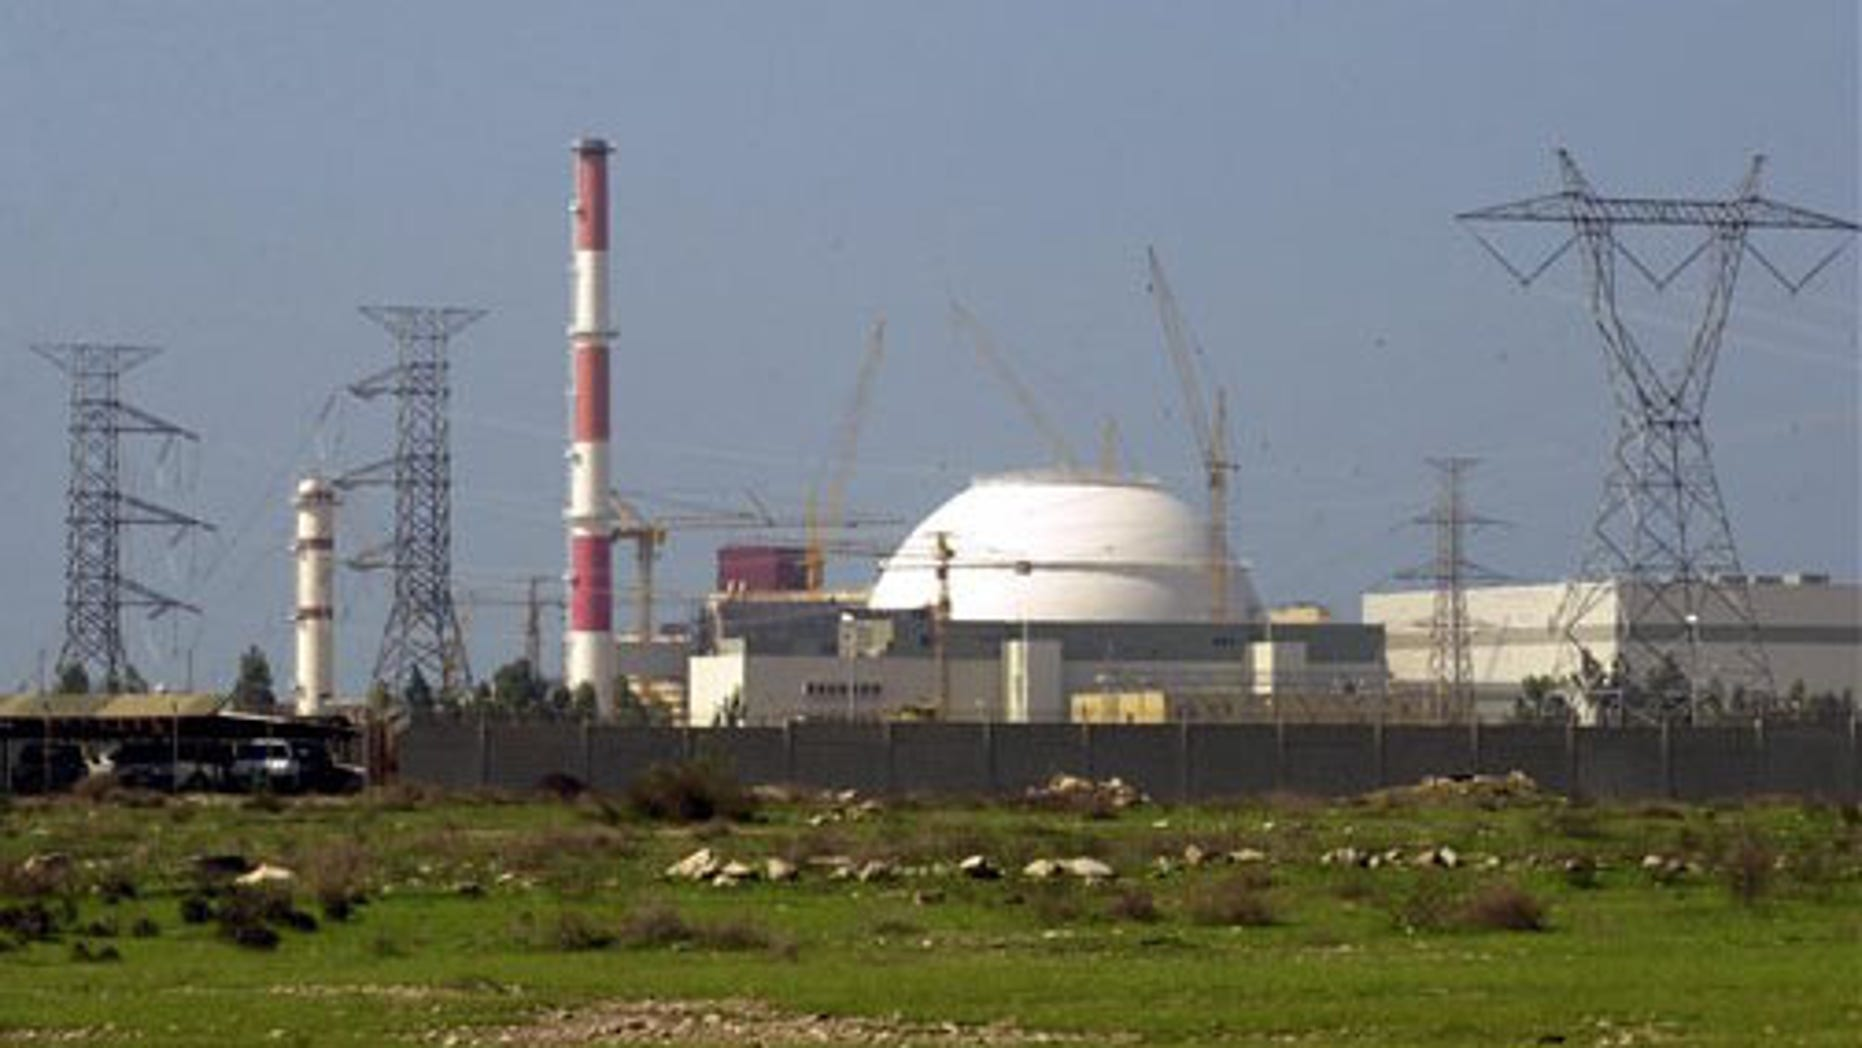 FILE - In this Feb. 27, 2005 file photo,  The reactor building of Iran's nuclear power plant is seen, at Bushehr, Iran.